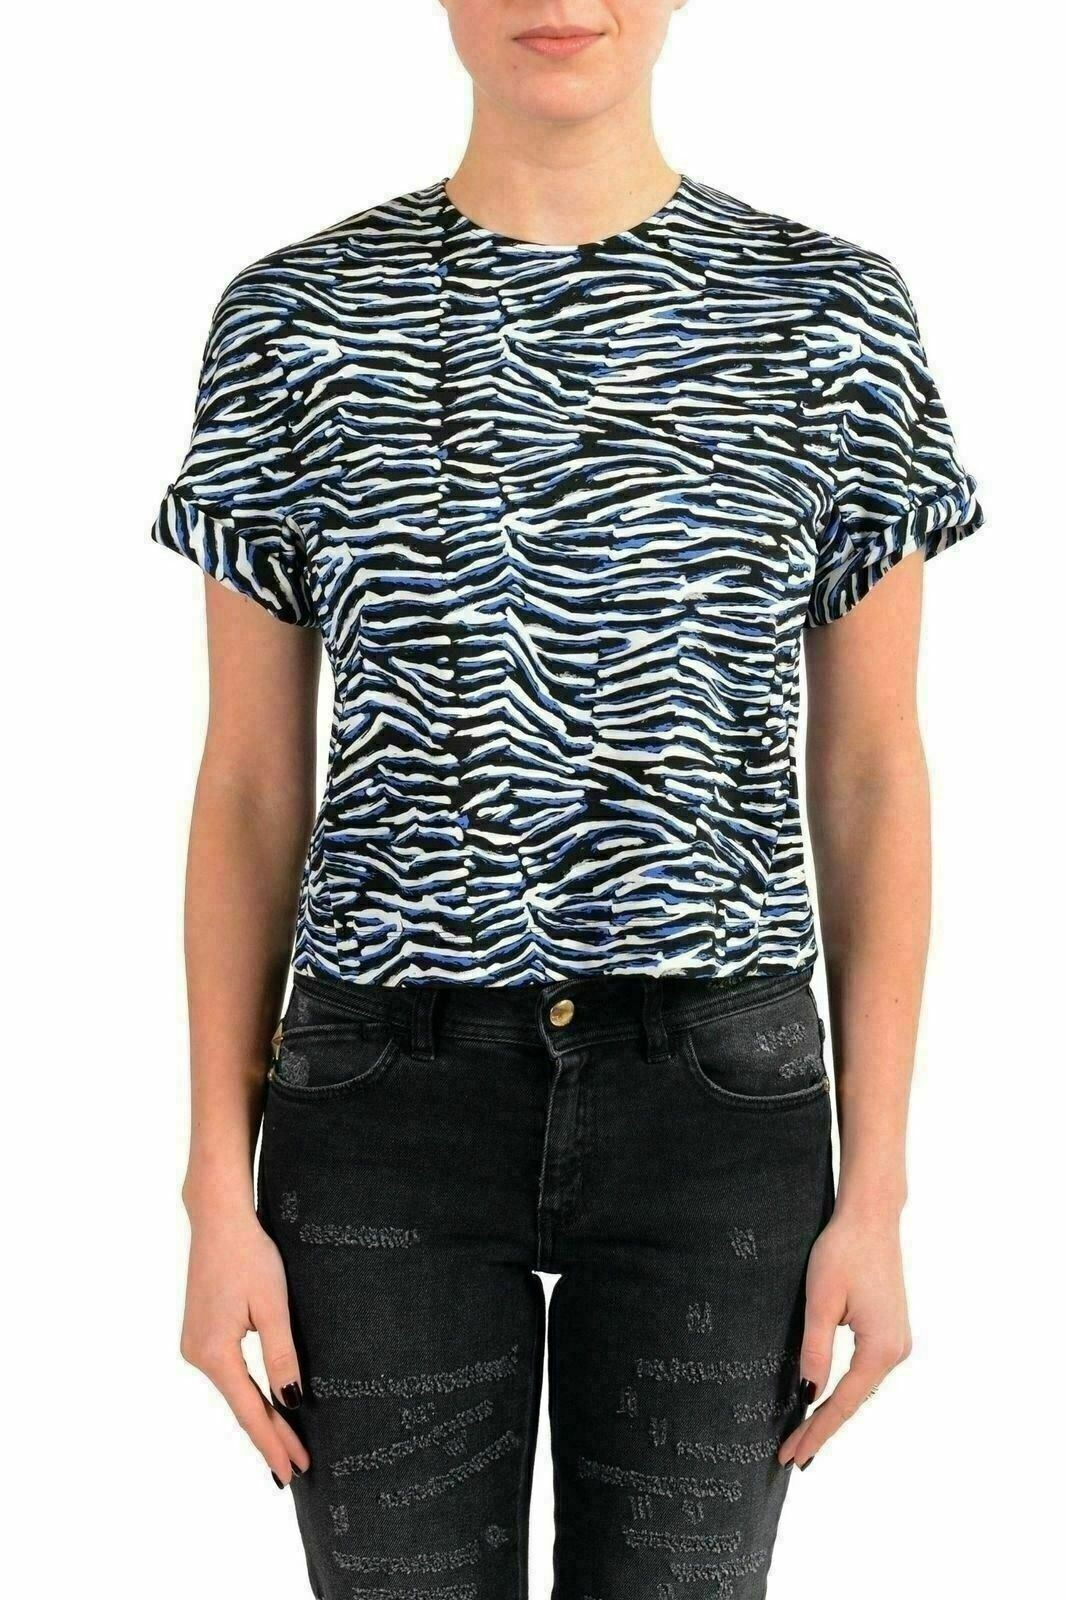 Just Cavalli Women's Multi-color Short Sleeve Cropped Top US S IT 40